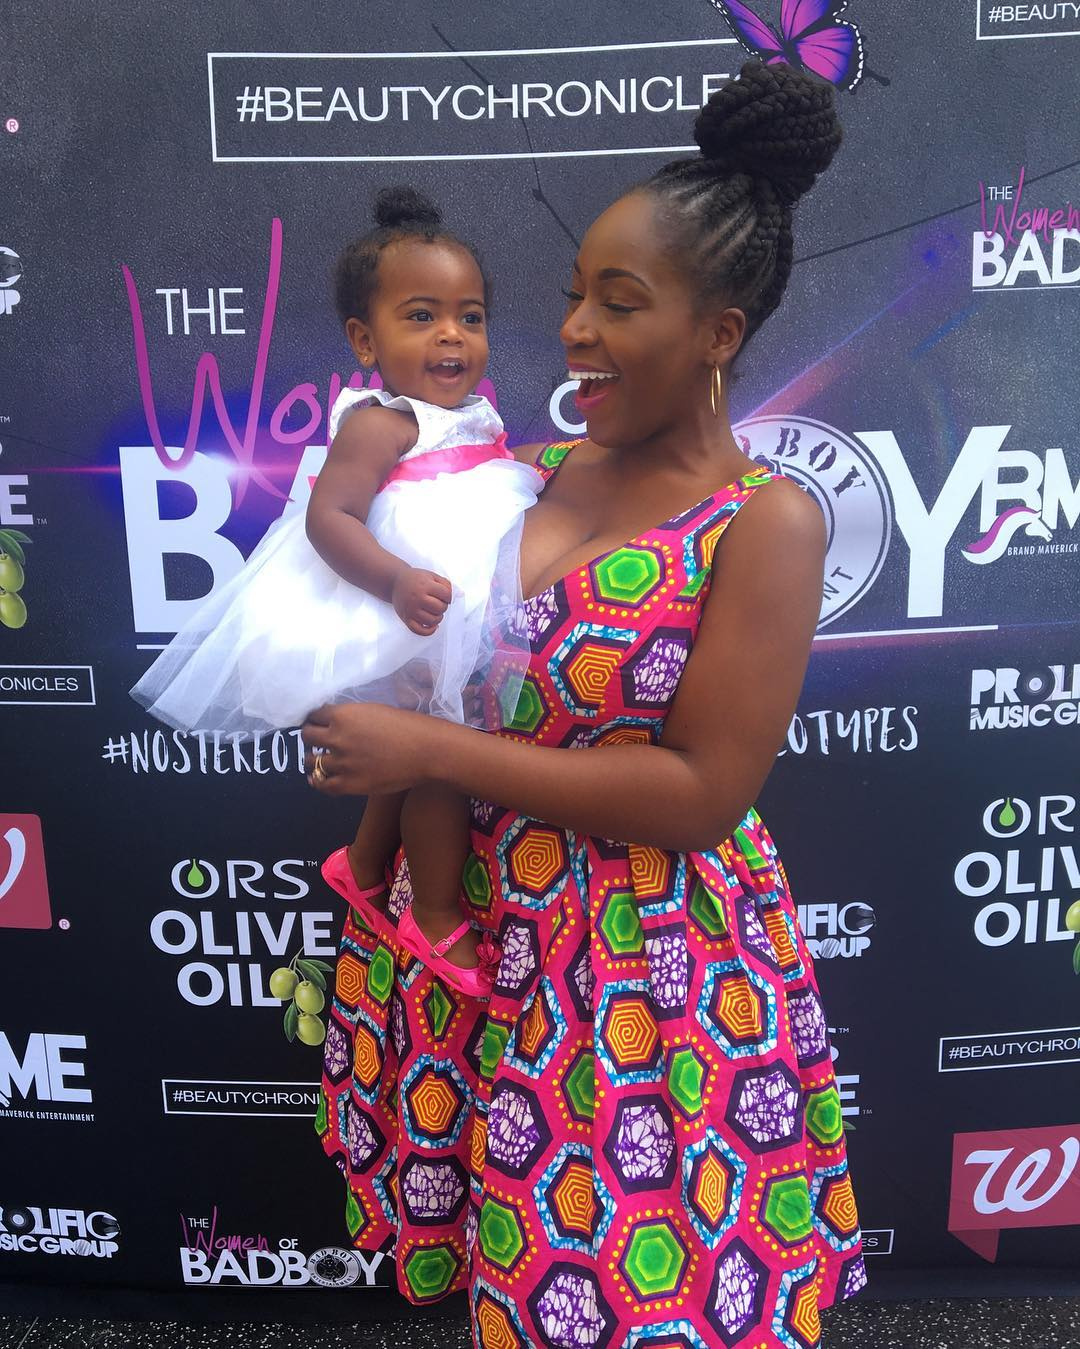 brunch-miss-dunnie-o-zion-olori-at-the-womens-empowerment-brunch-ft-the-women-of-bad-boy-los-angeles